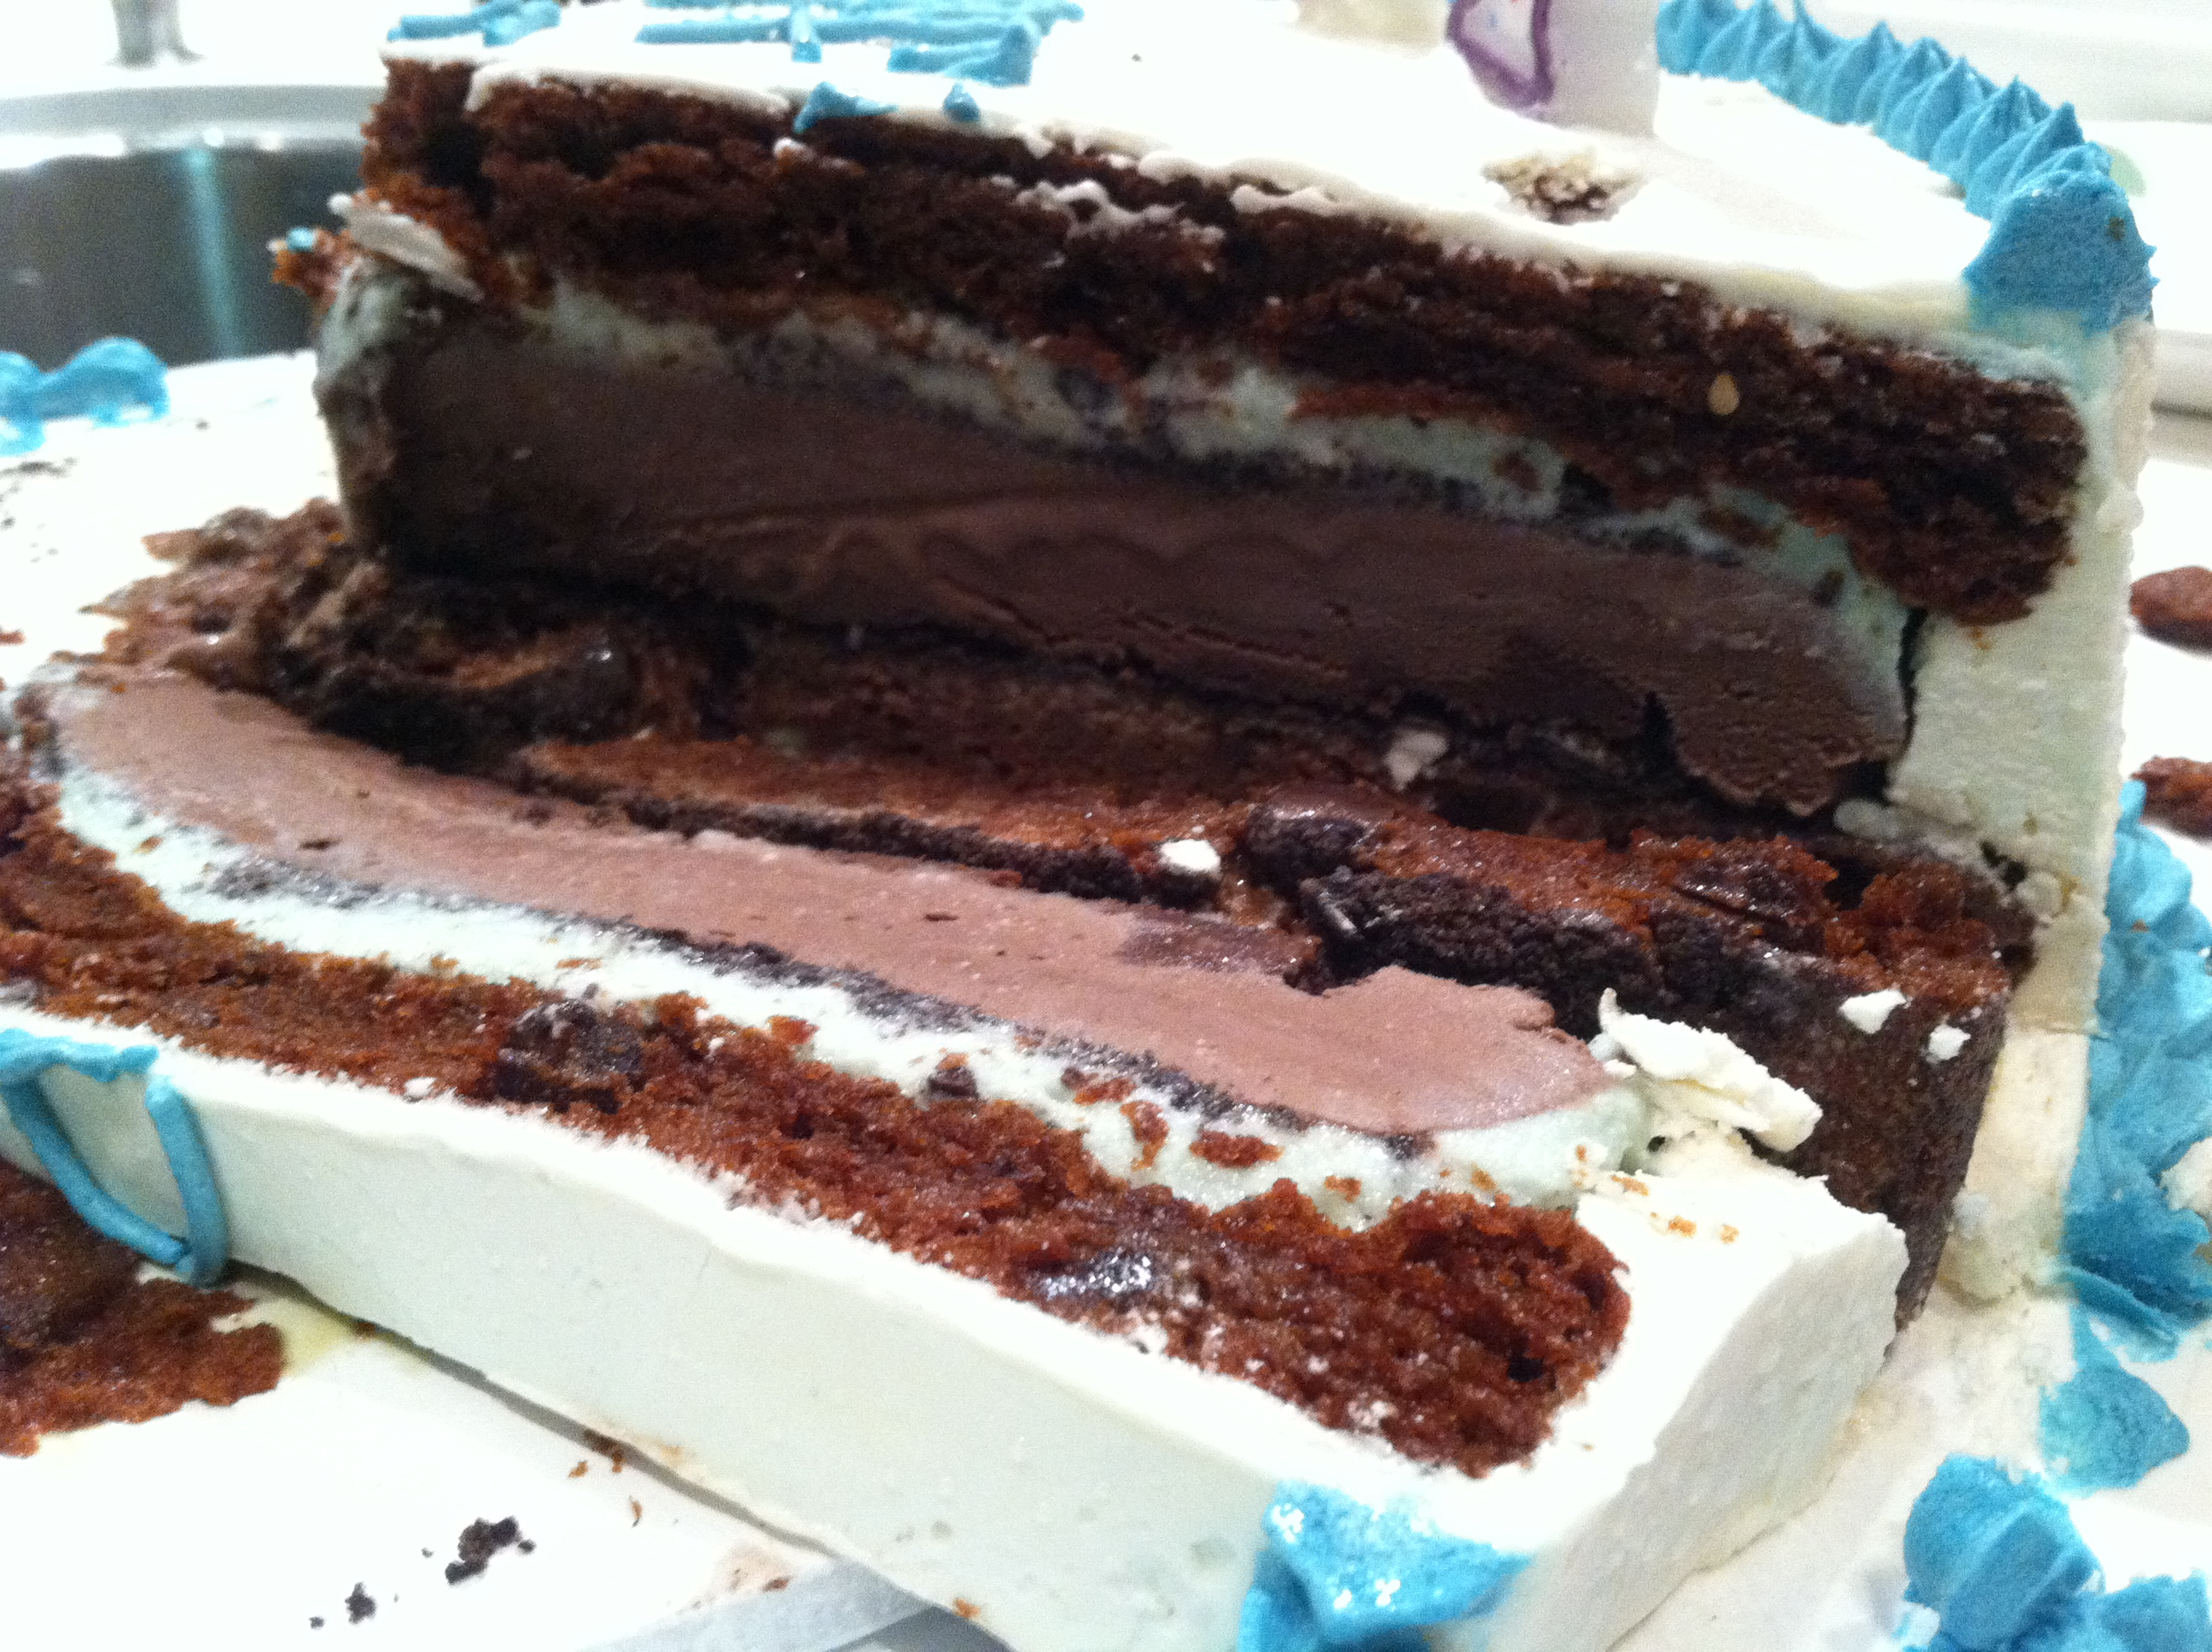 Gluten Free Chocolate Mint Chip Ice Cream Cake